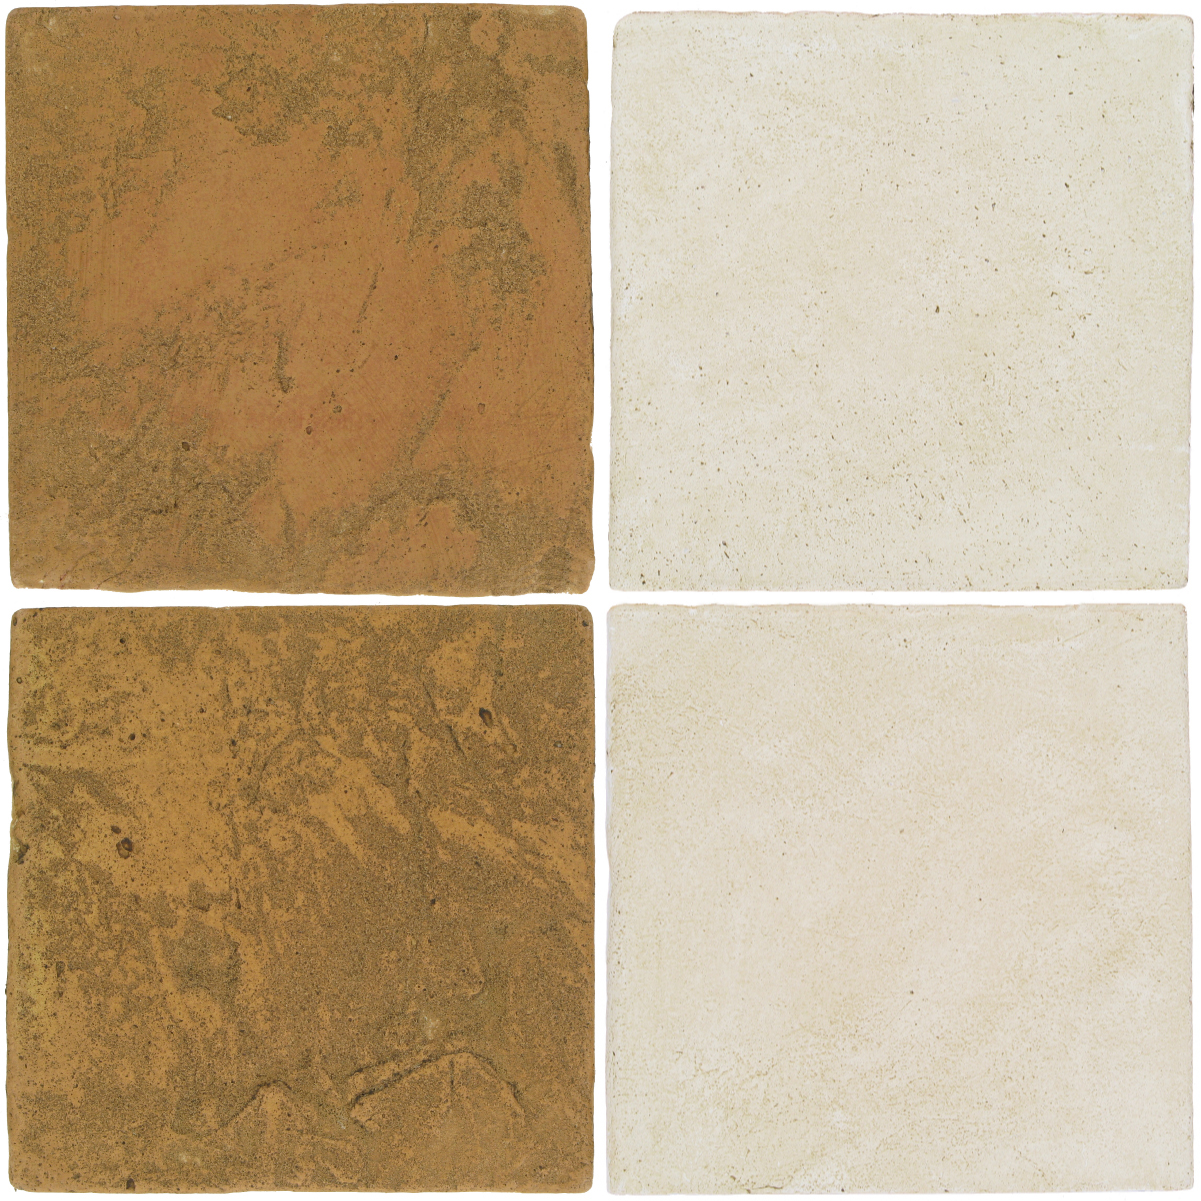 Pedralbes Antique Terracotta  2 Color Combinations  VTG-PSSW Siena Wheat + OHS-PGAW Antique White